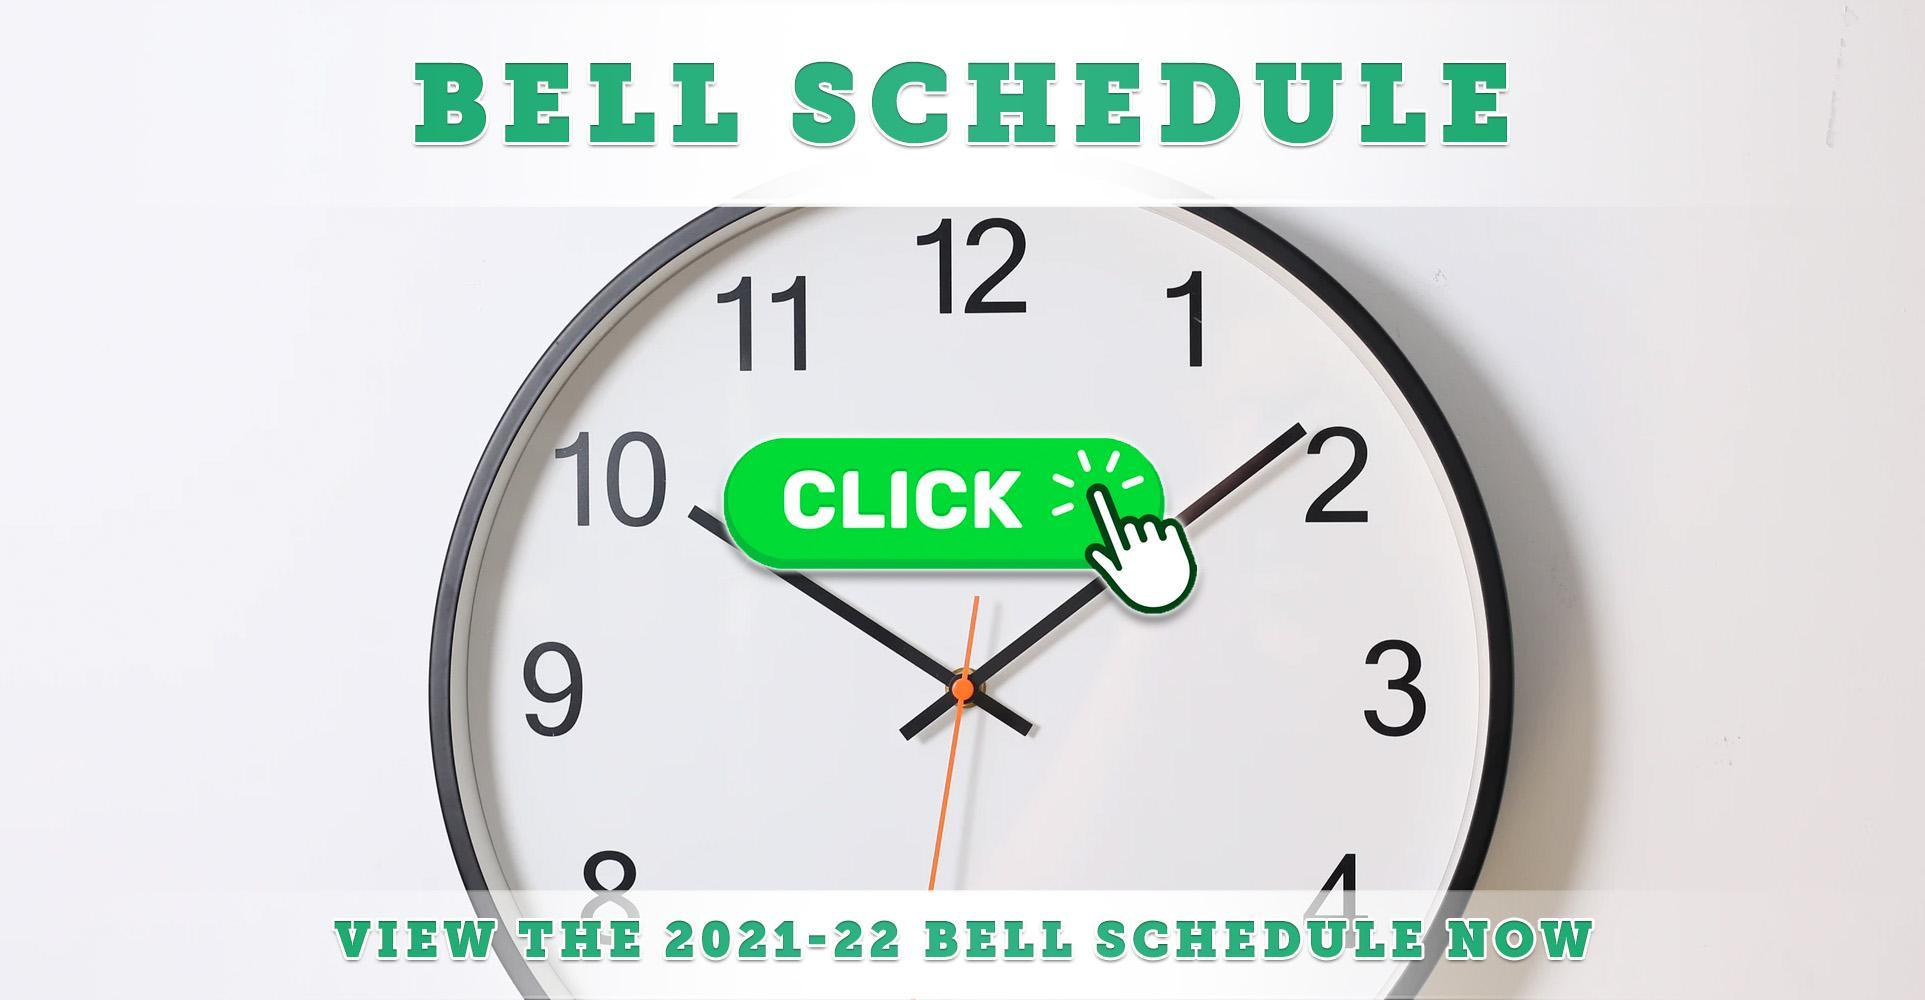 Mabel Paine's 2021-22 Bell Schedule Now Available